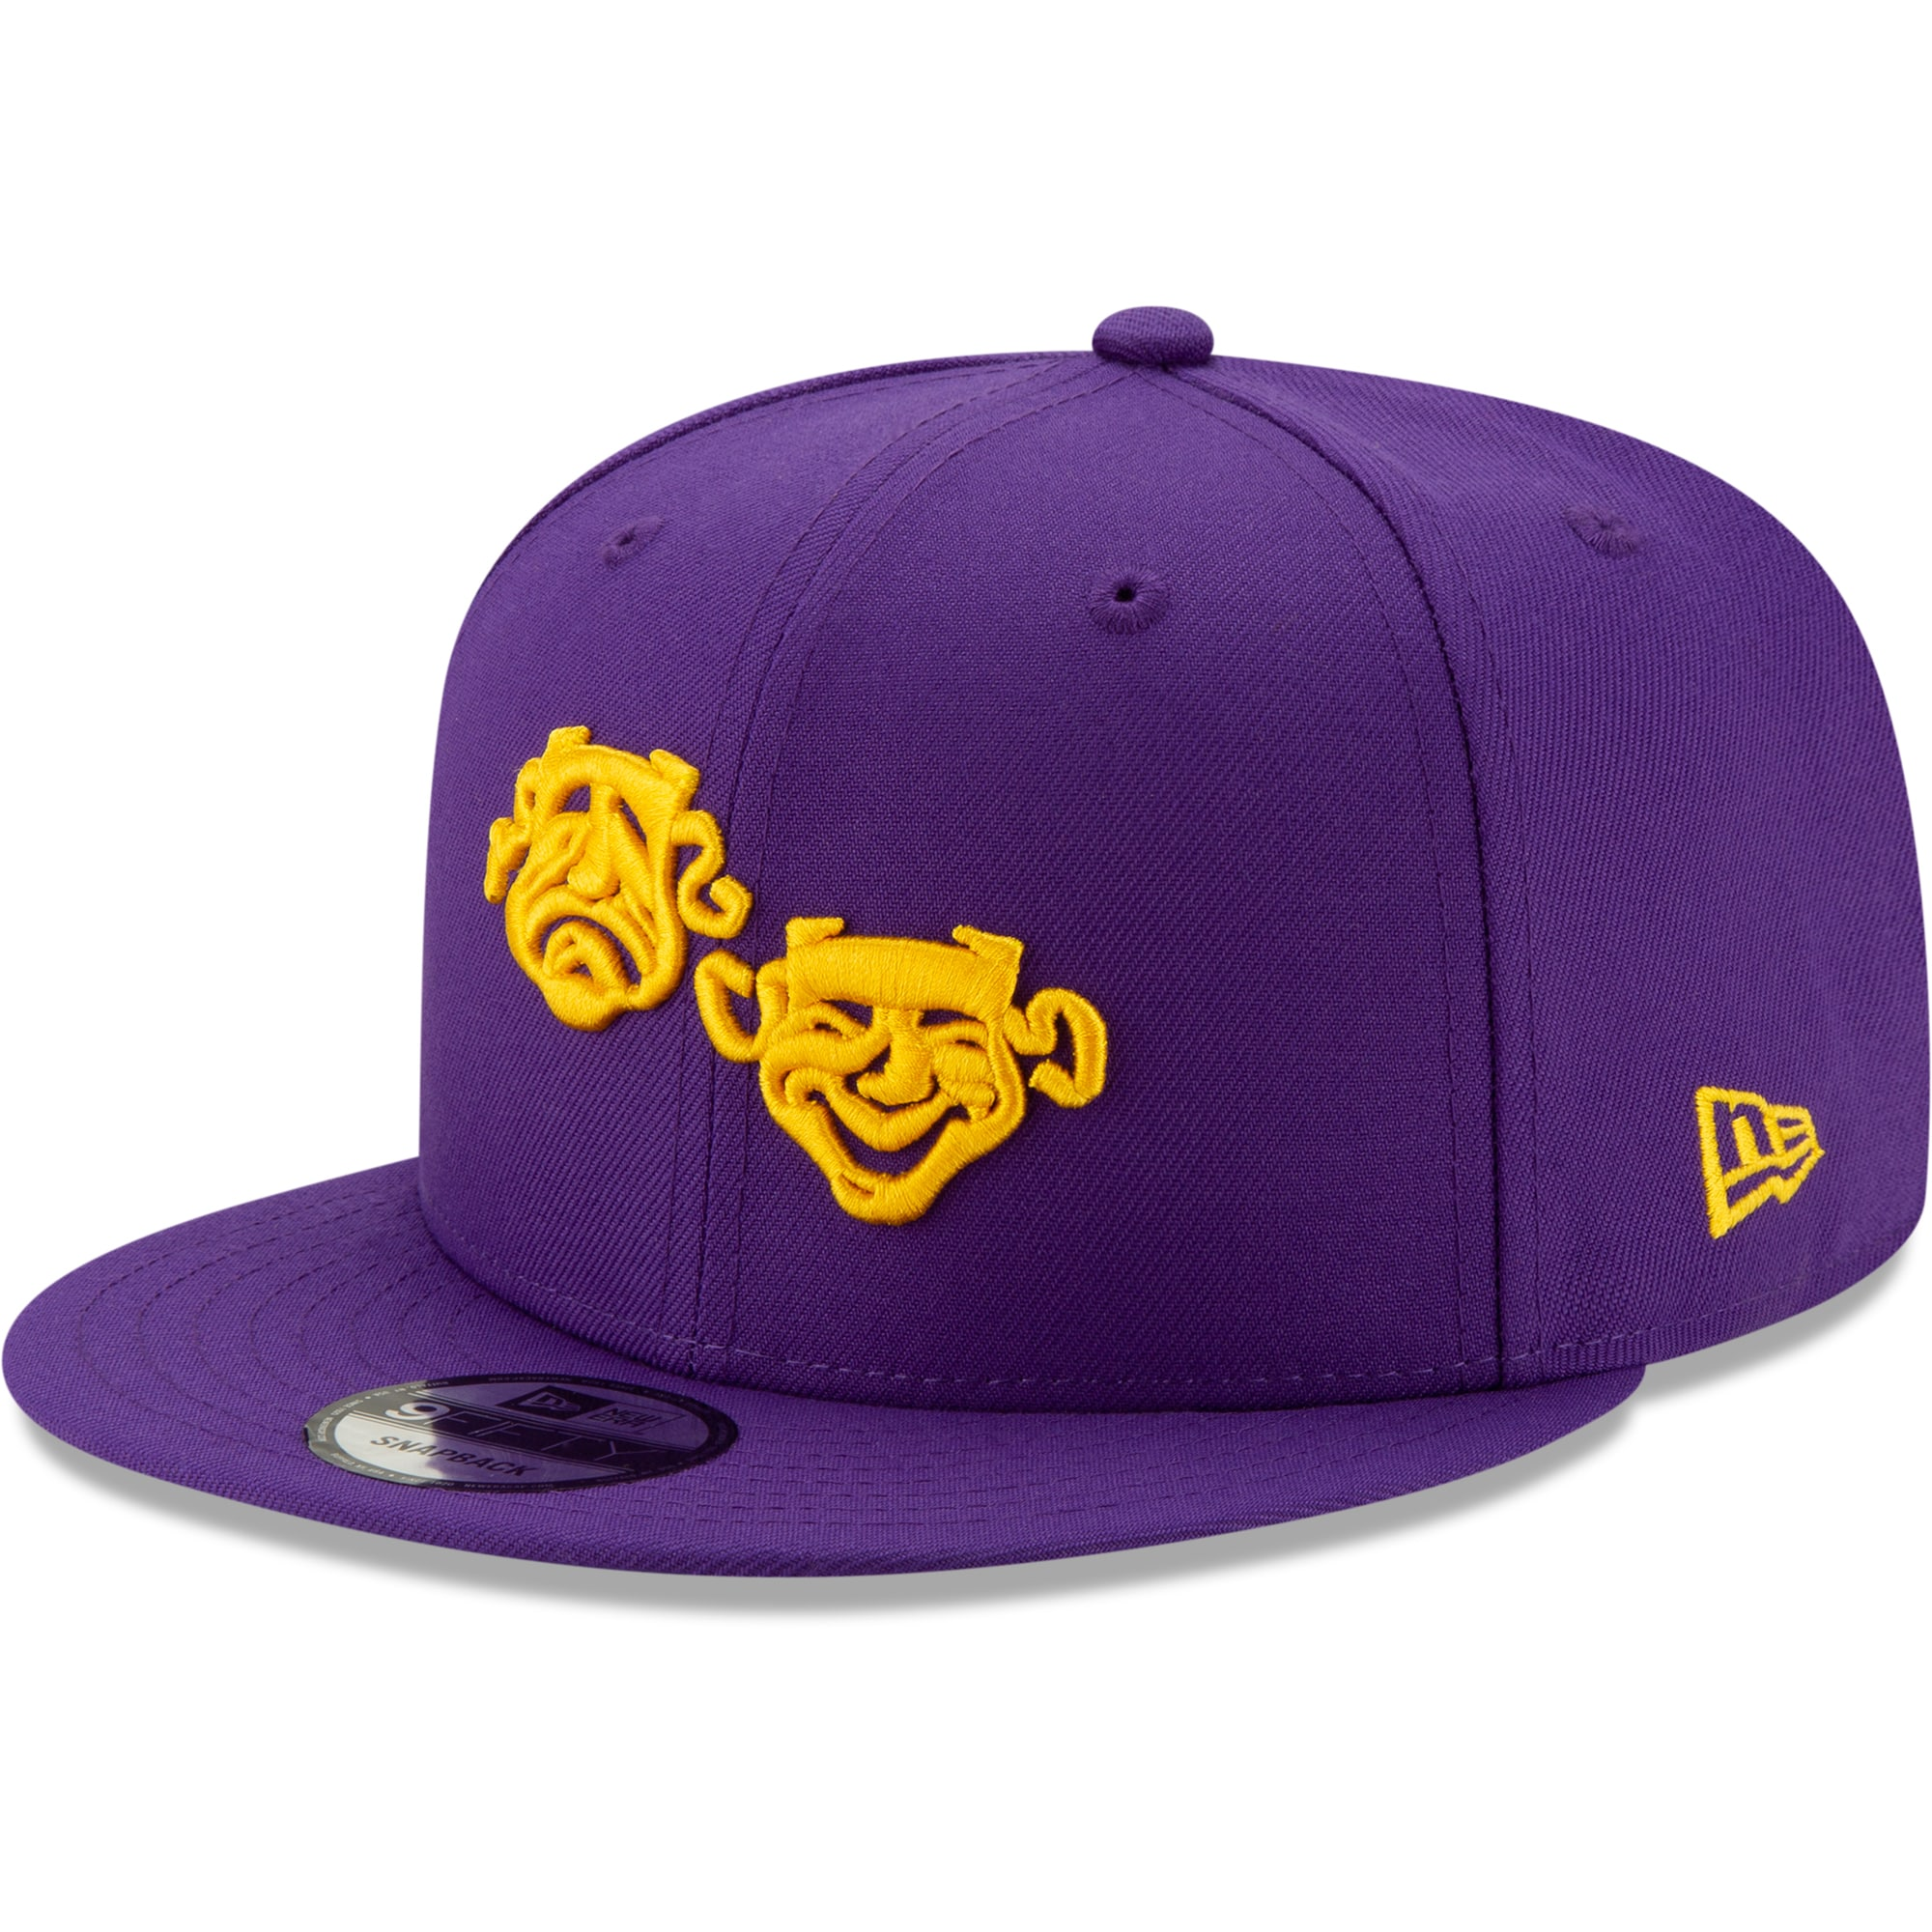 New Orleans Pelicans New Era 2019/20 City Edition 9FIFTY Snapback Adjustable Hat - Purple